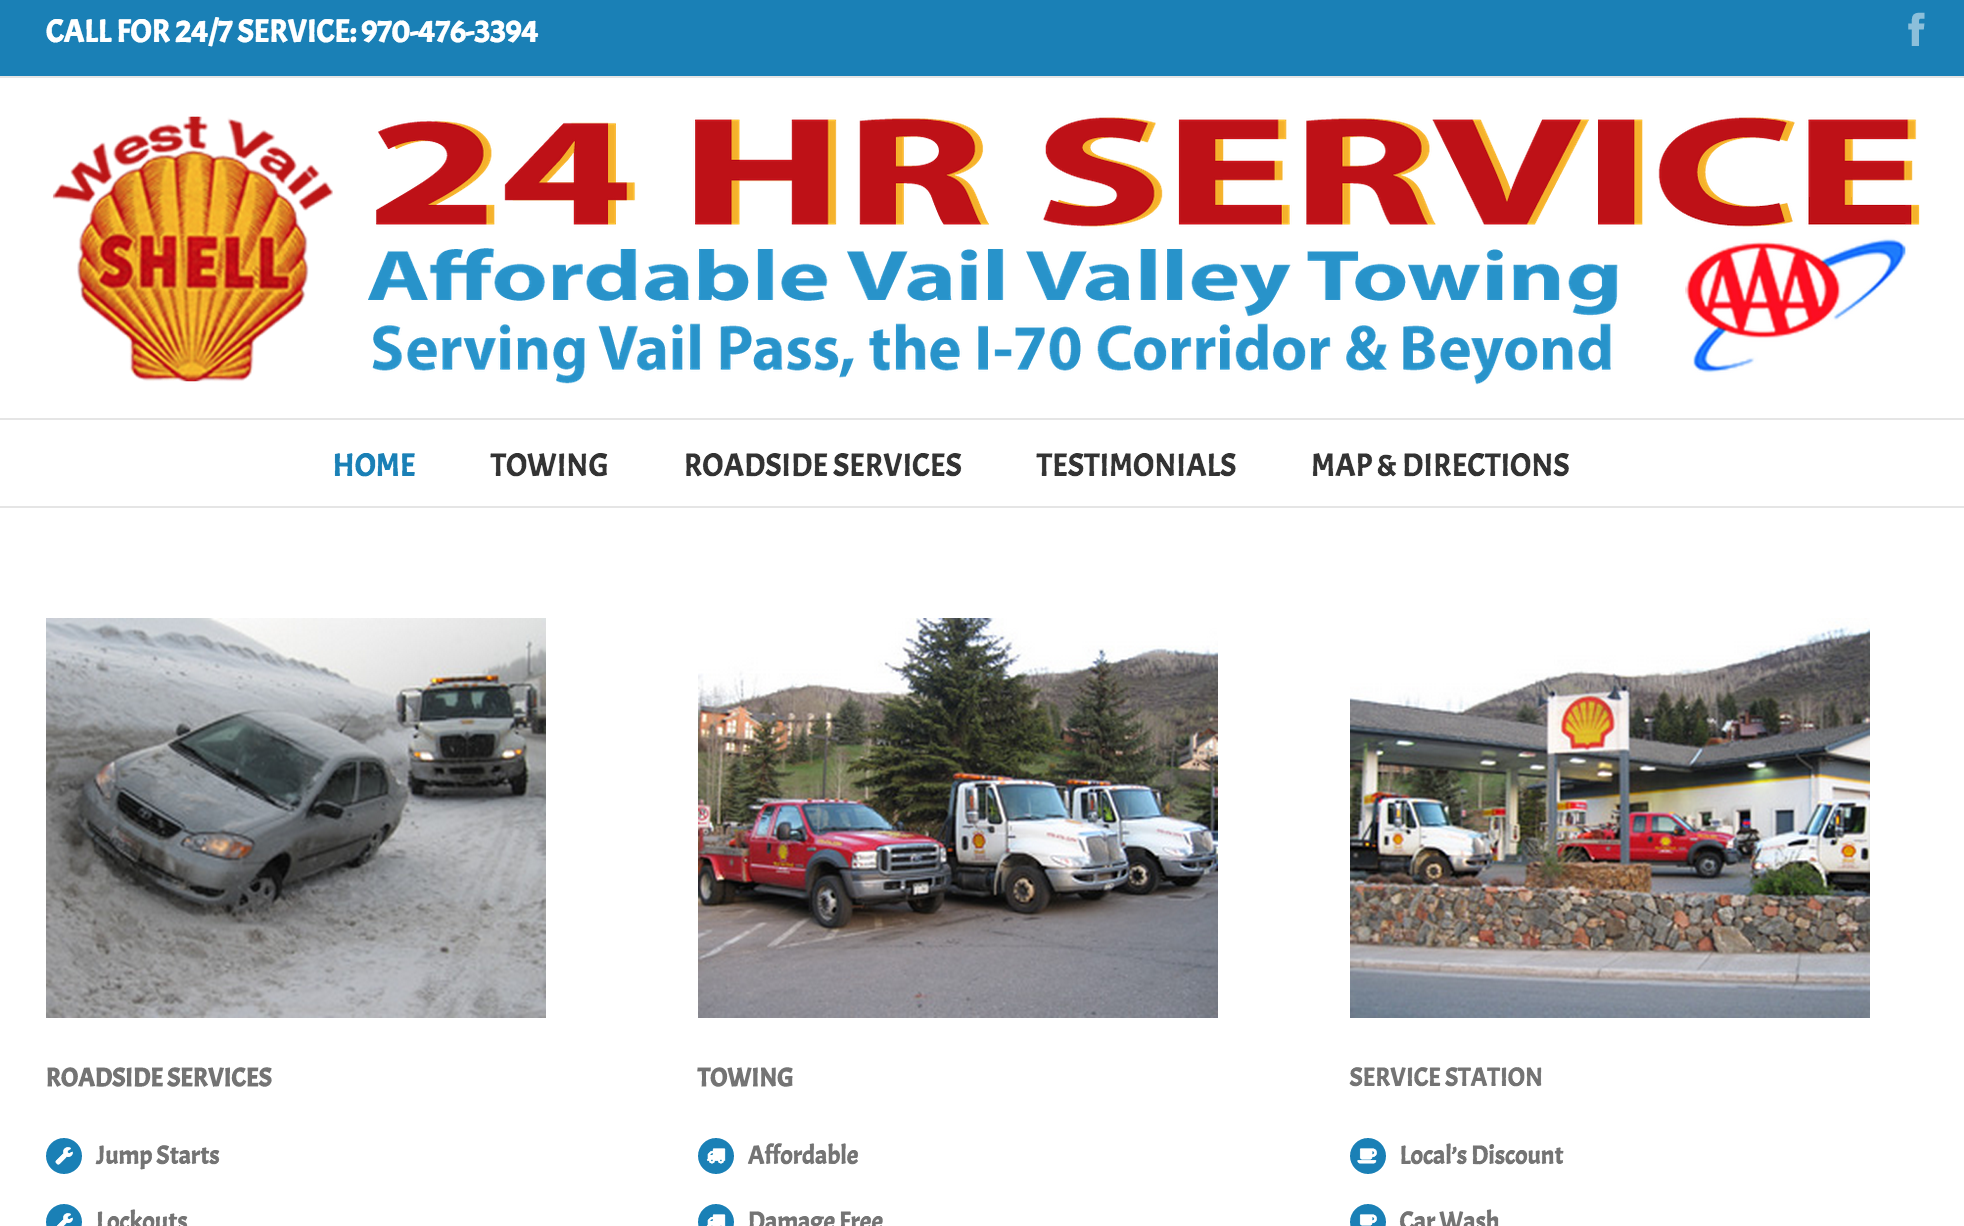 west-vail-shell-website